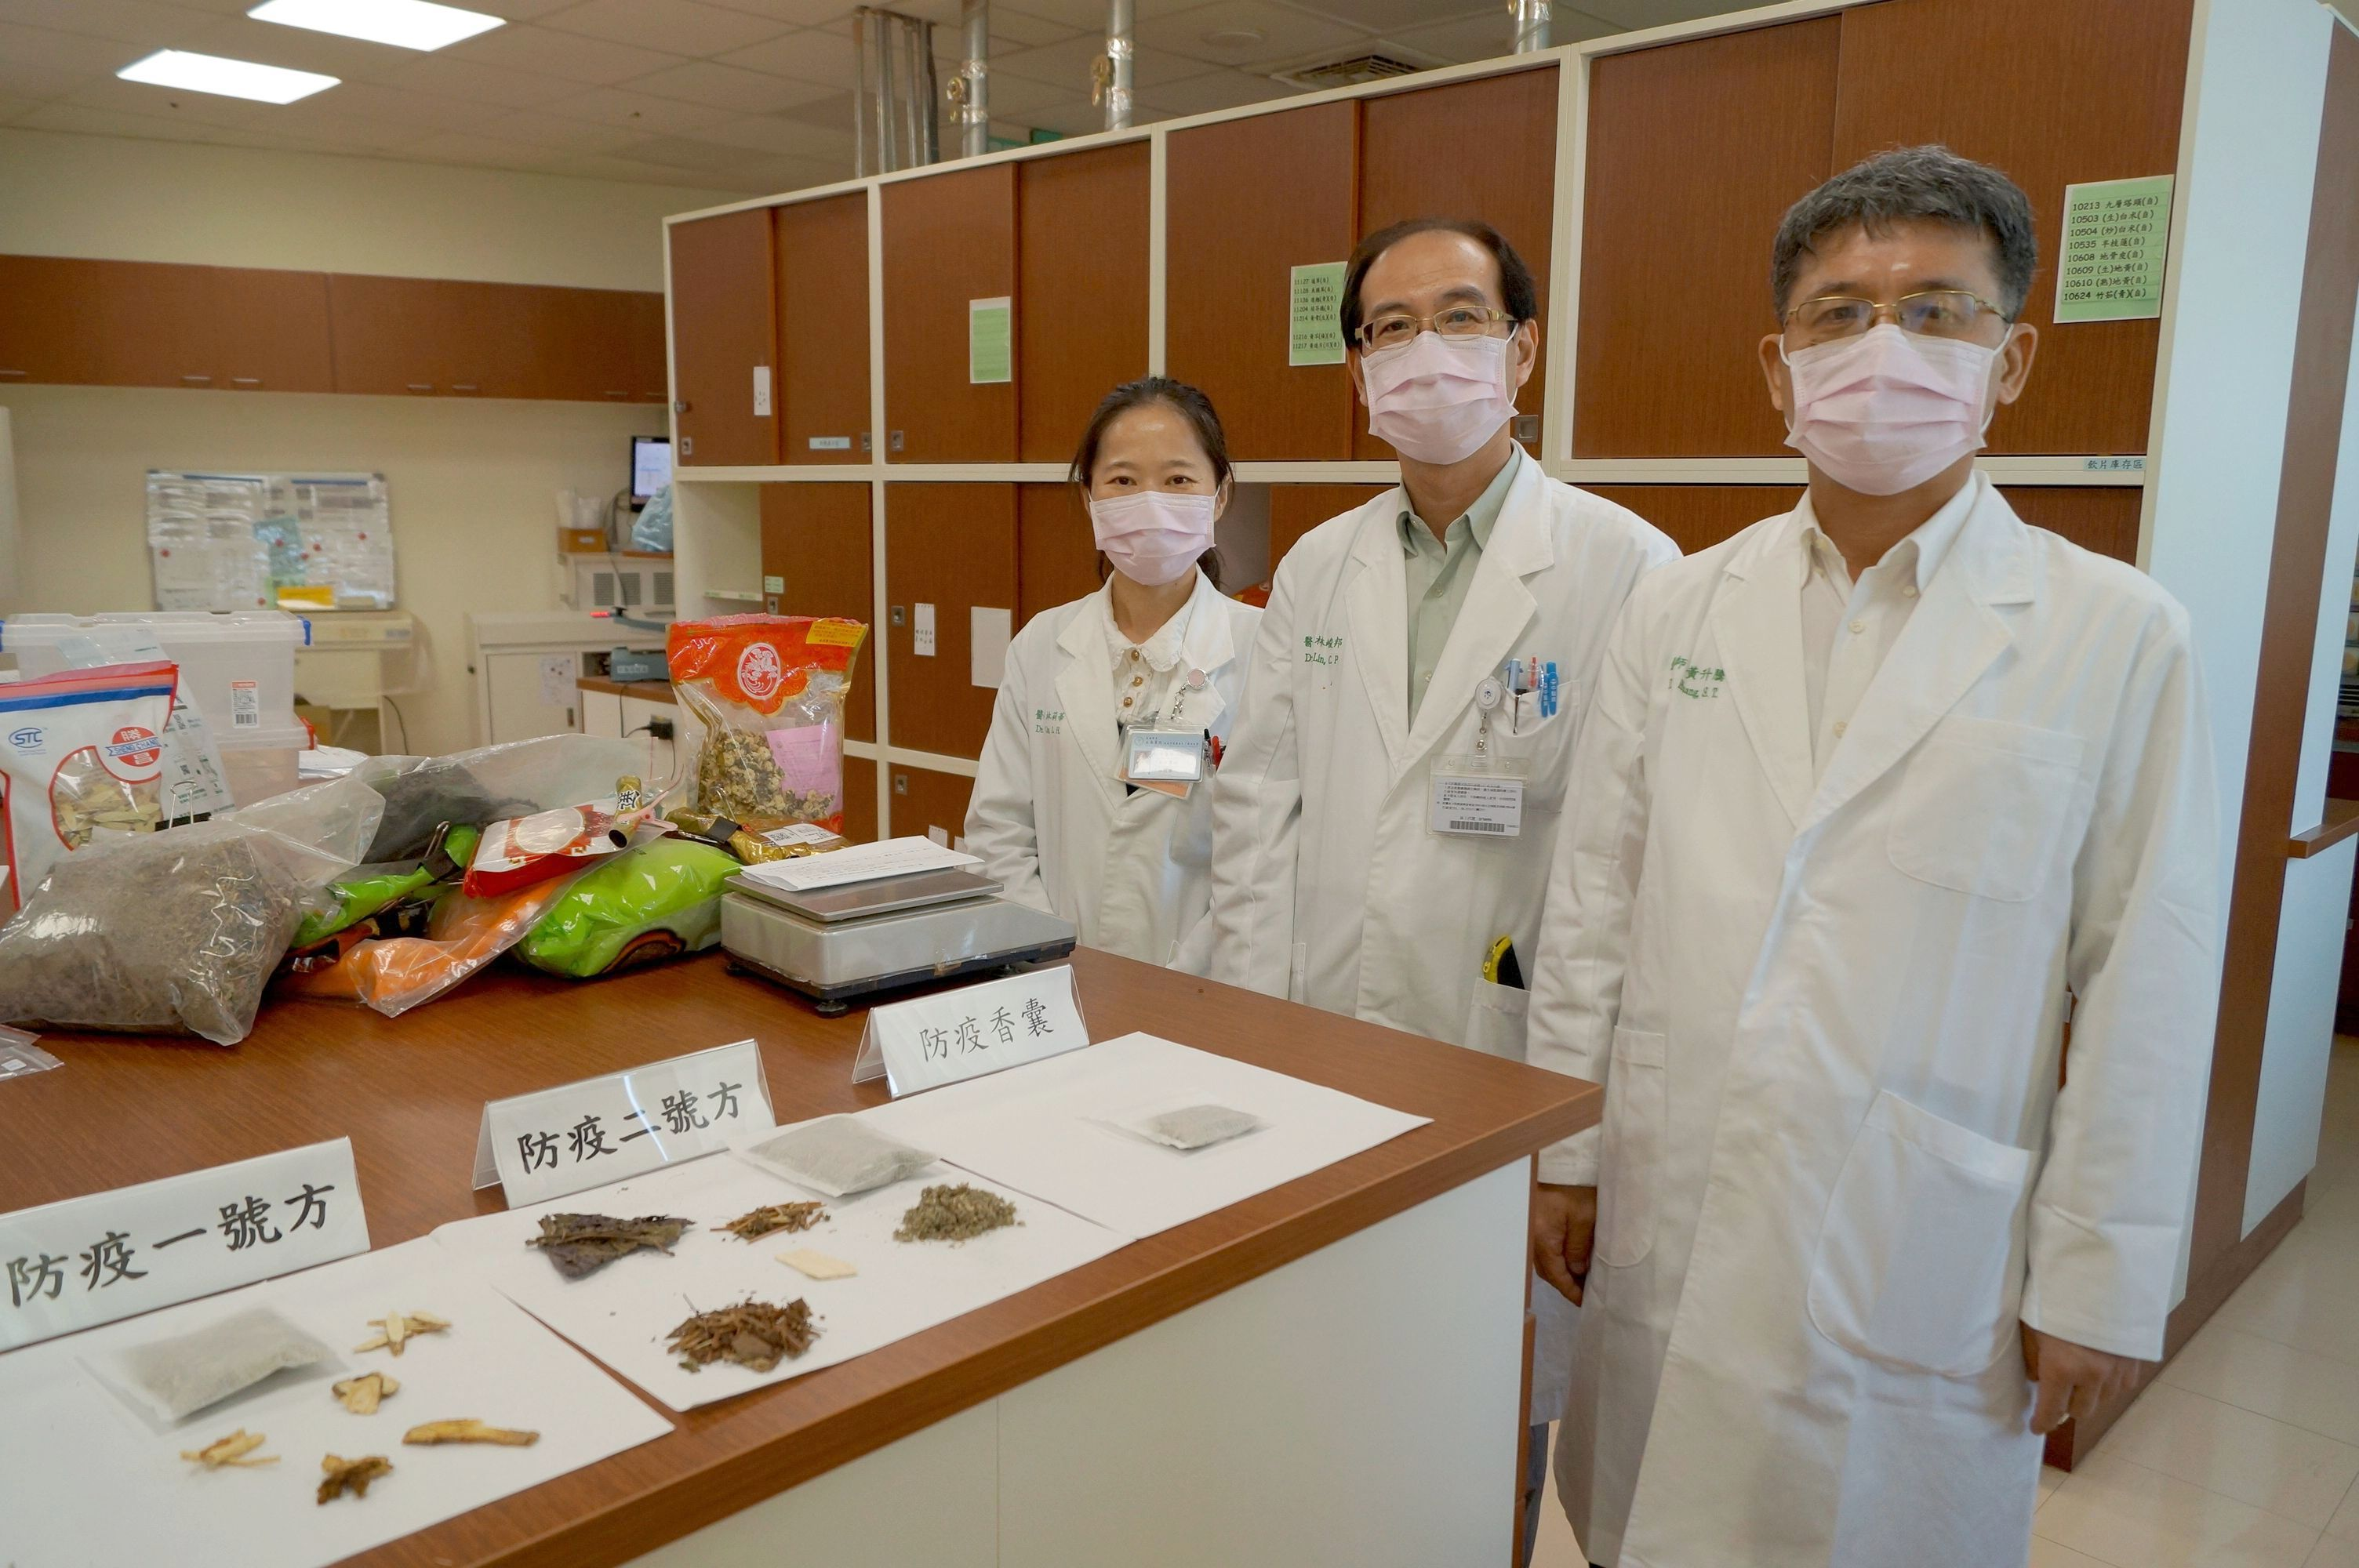 Dr. Sheng-Teng Huang (right) and his Chinese medicine research team